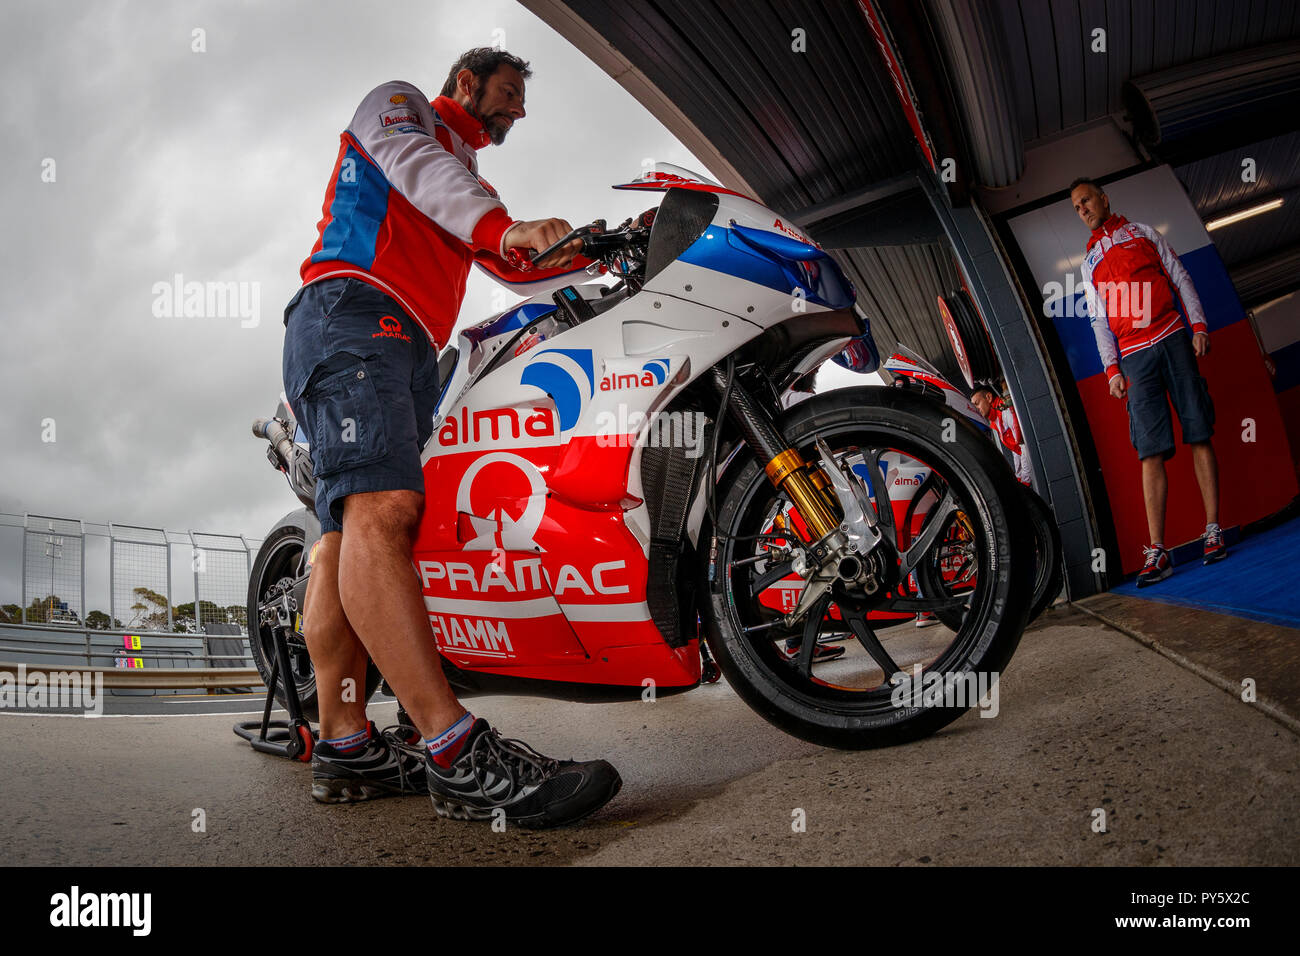 Melbourne, Australia. Friday, 26 October, 2018. Phillip Island, Australia. Danilo Petrucci's MotoGP bike is warmed up prior to the start of Friday Free Practice. Credit: Russell Hunter/Alamy Live News - Stock Image